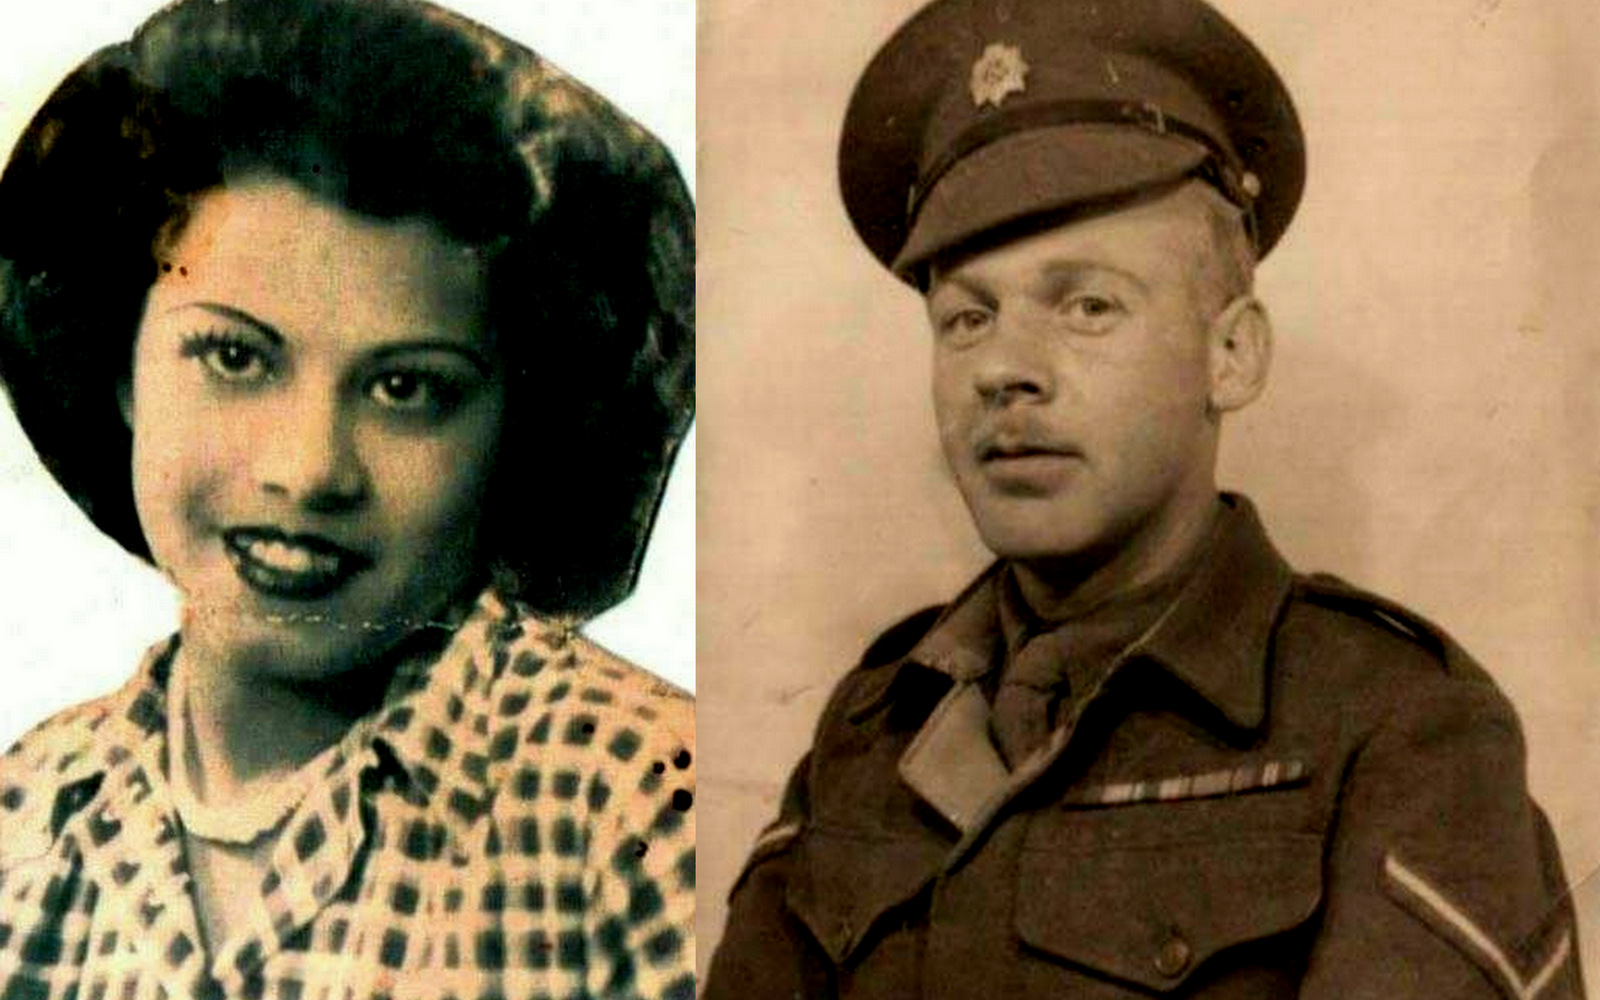 Batya Pearson, nee Nadaf, Julie Pearson's Yemenite Jewish grandmother. (pictured left) and James Pearson (pictured right), Julie Pearson's grandfather, a member of the British mandatory police in Palestine, circa 1946. The couple married in January 1946. (Photos provided by the Pearson family.)